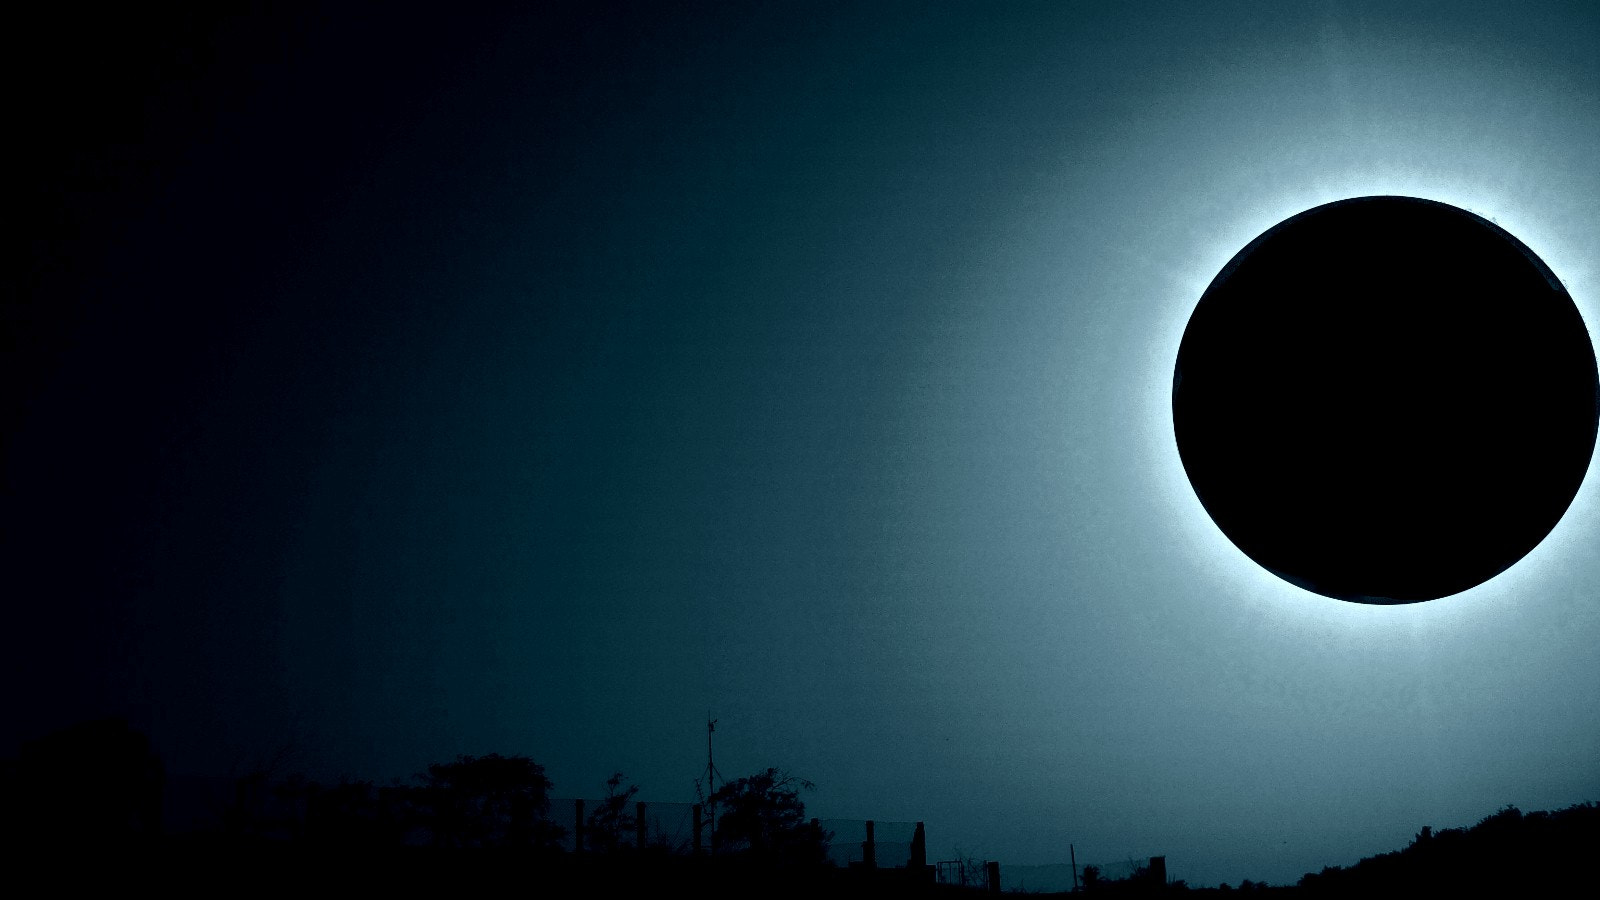 Photograph Imaginary Eclipse by Aukash Kumar on 500px